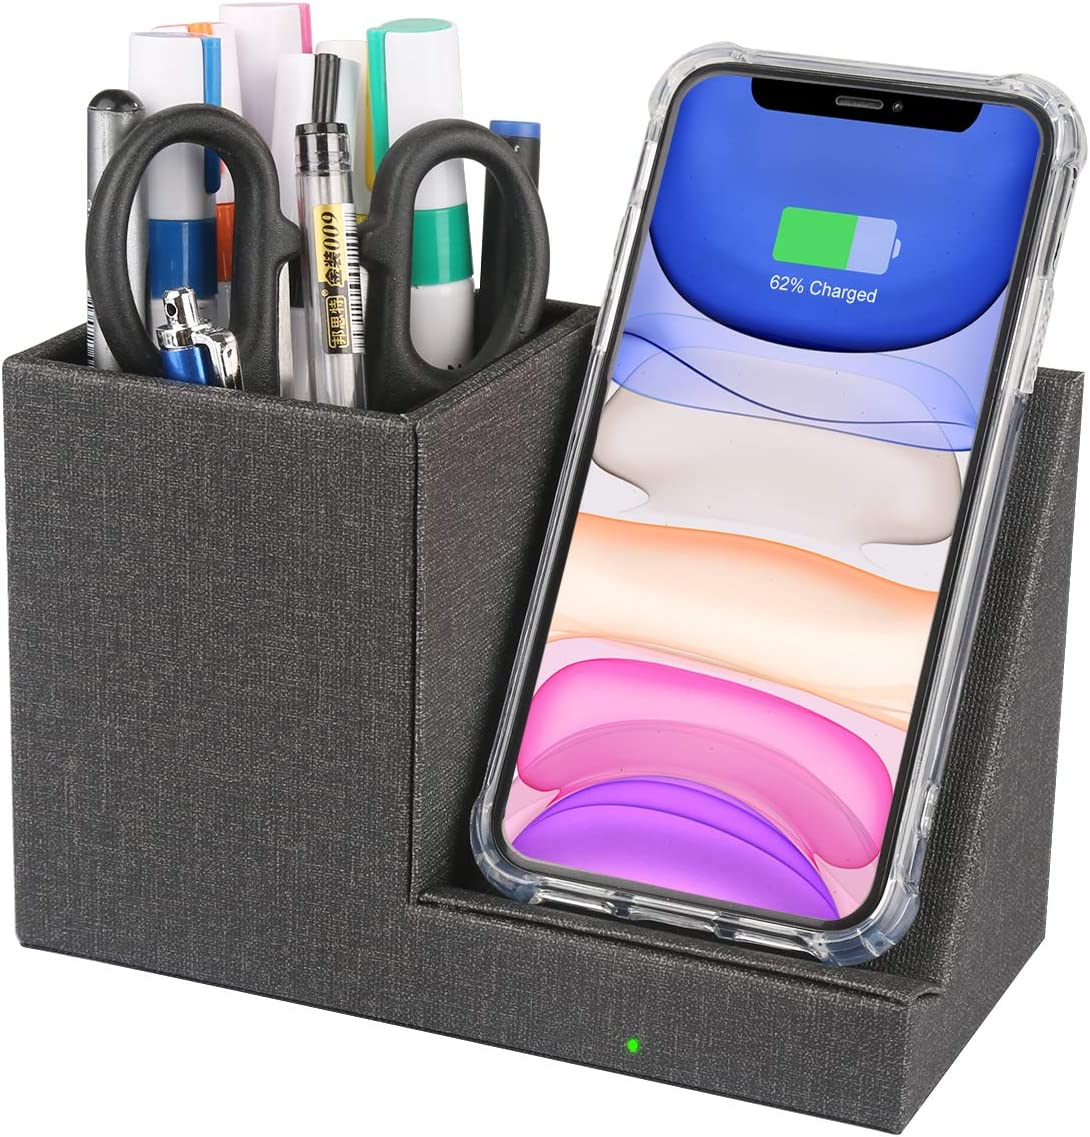 VHEONETE 10W Fast Wireless Charger Desk Stand Organizer, Wireless Charging Station, Desk Storage, Qi Certified Charging Dock for iPhone 11/Xs MAX/XR/XS/X/8, Samsung S10/S9/S9+/S8/S8+, Pen Holder